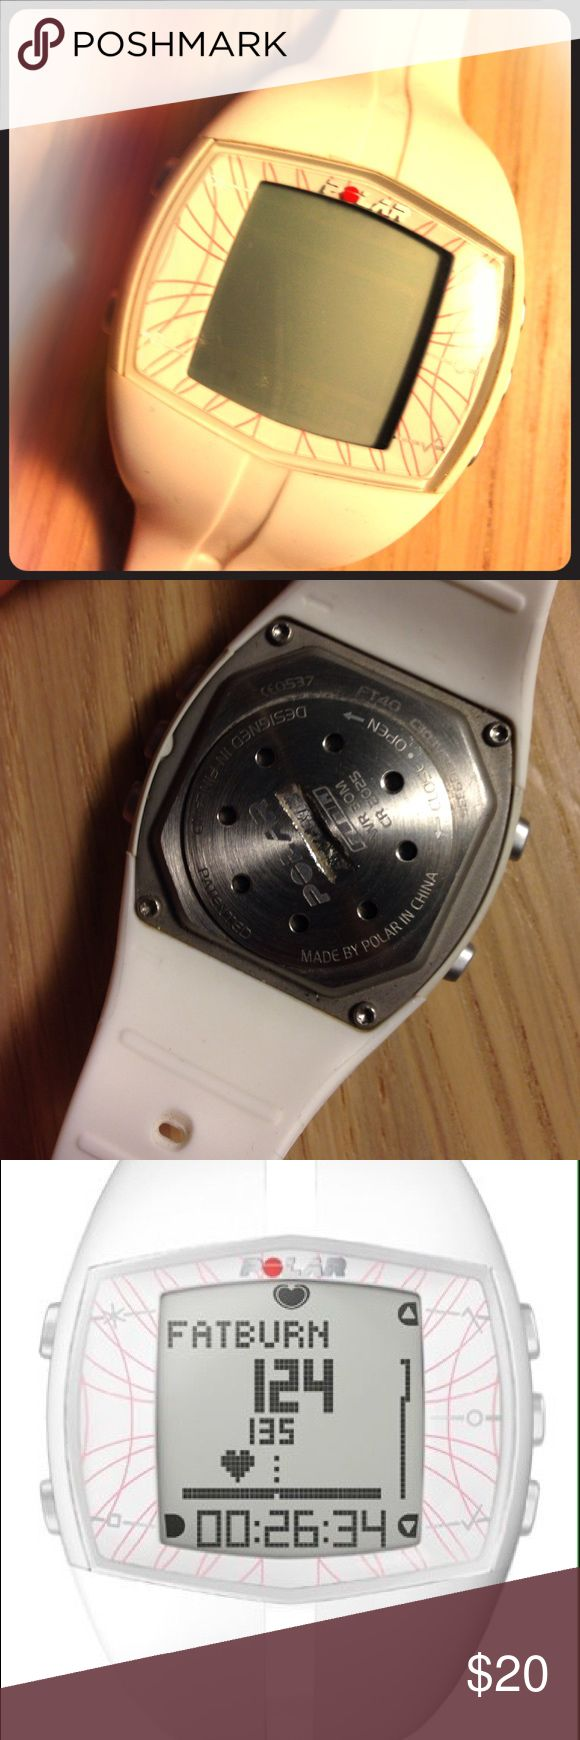 Polar FT40 Fitness Watch(chest strap not included) Polar FT40 Fitness Watch (chest strap not included) Needs new battery. Polar Other